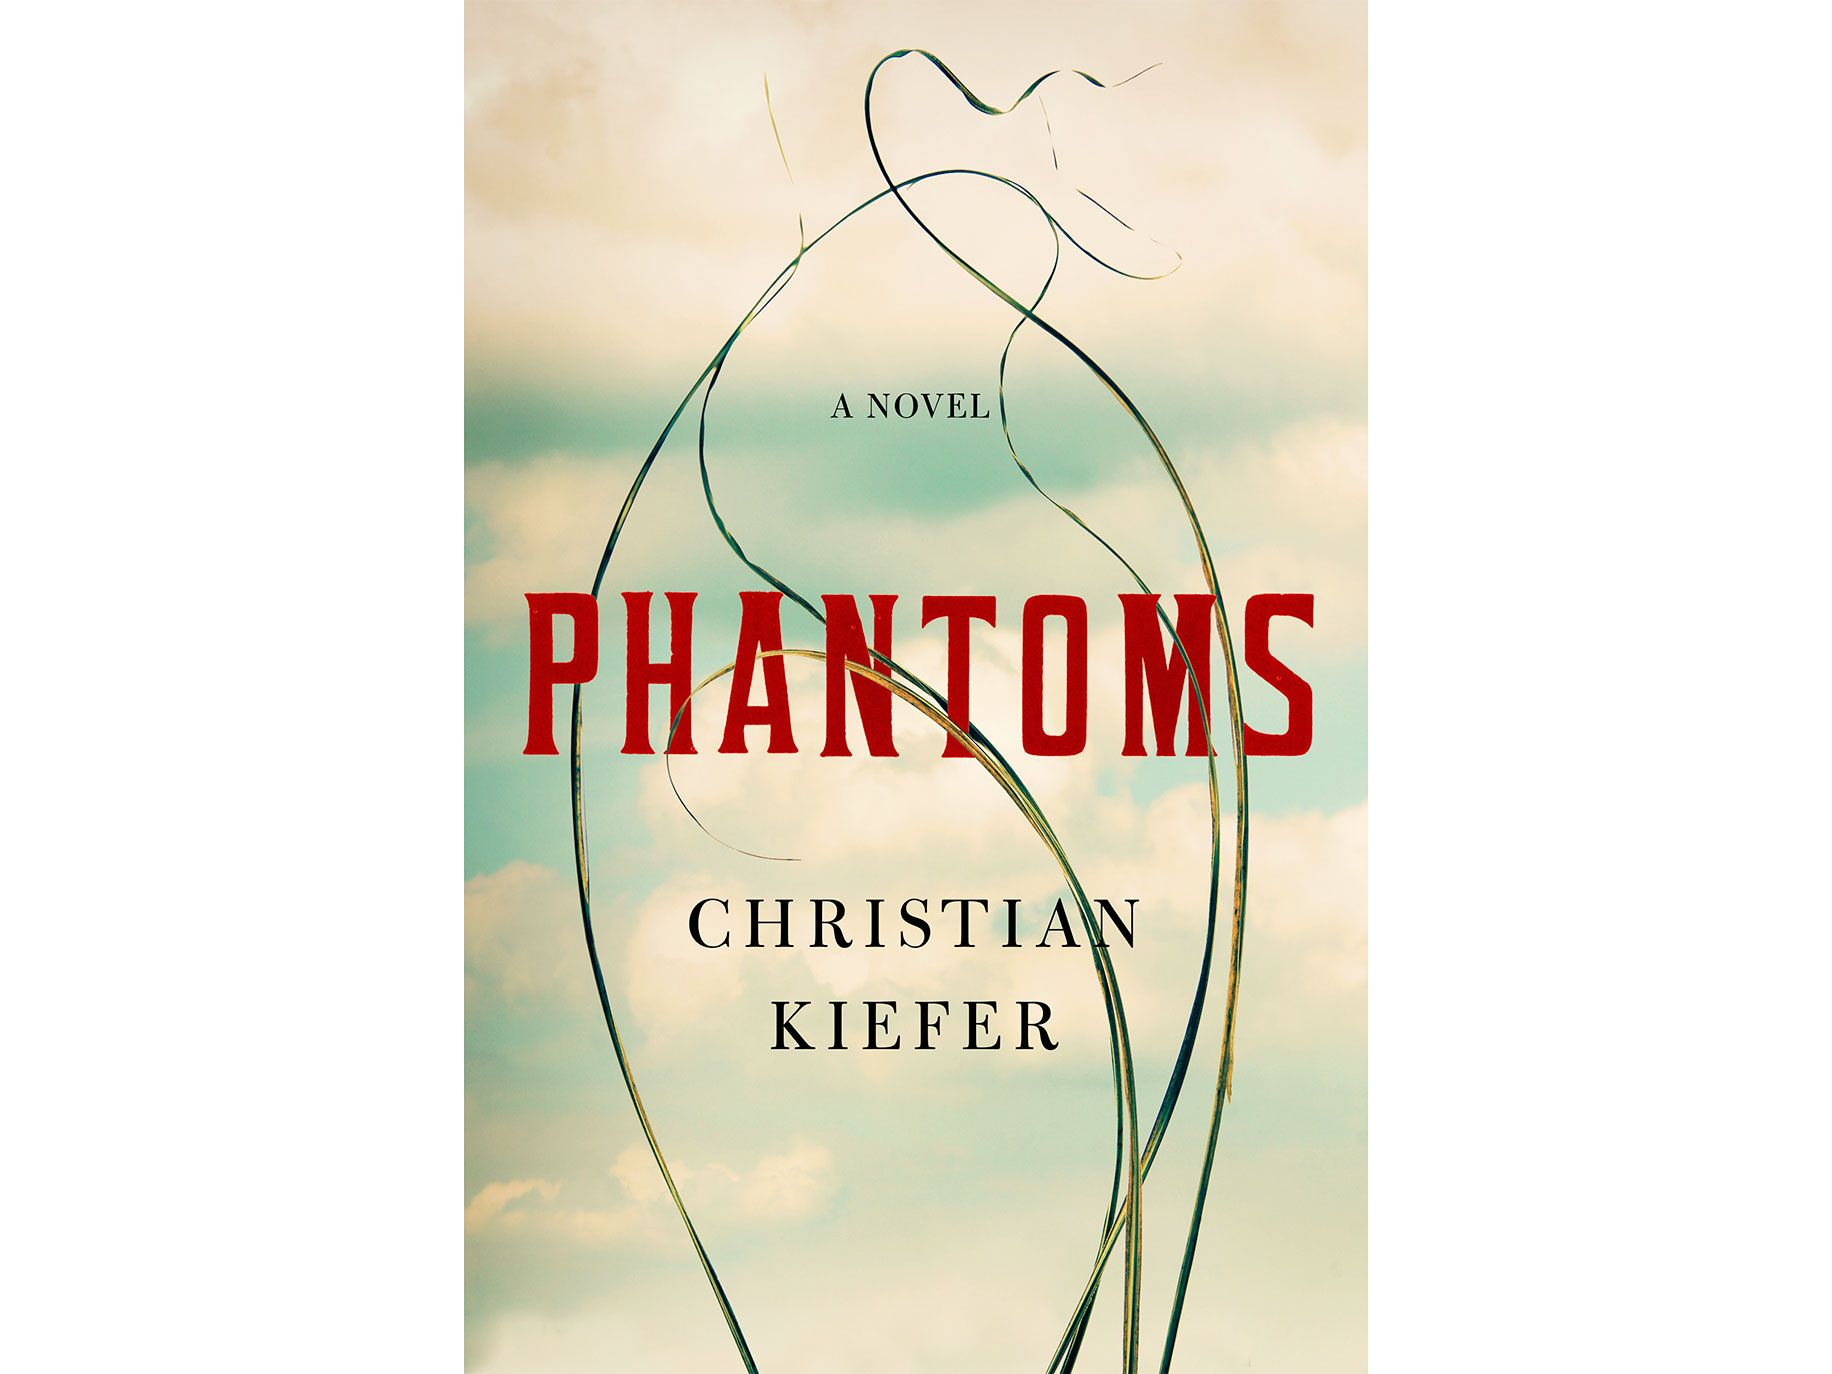 Phantoms by Christian Kiefer, 288 pages, Liveright, $27